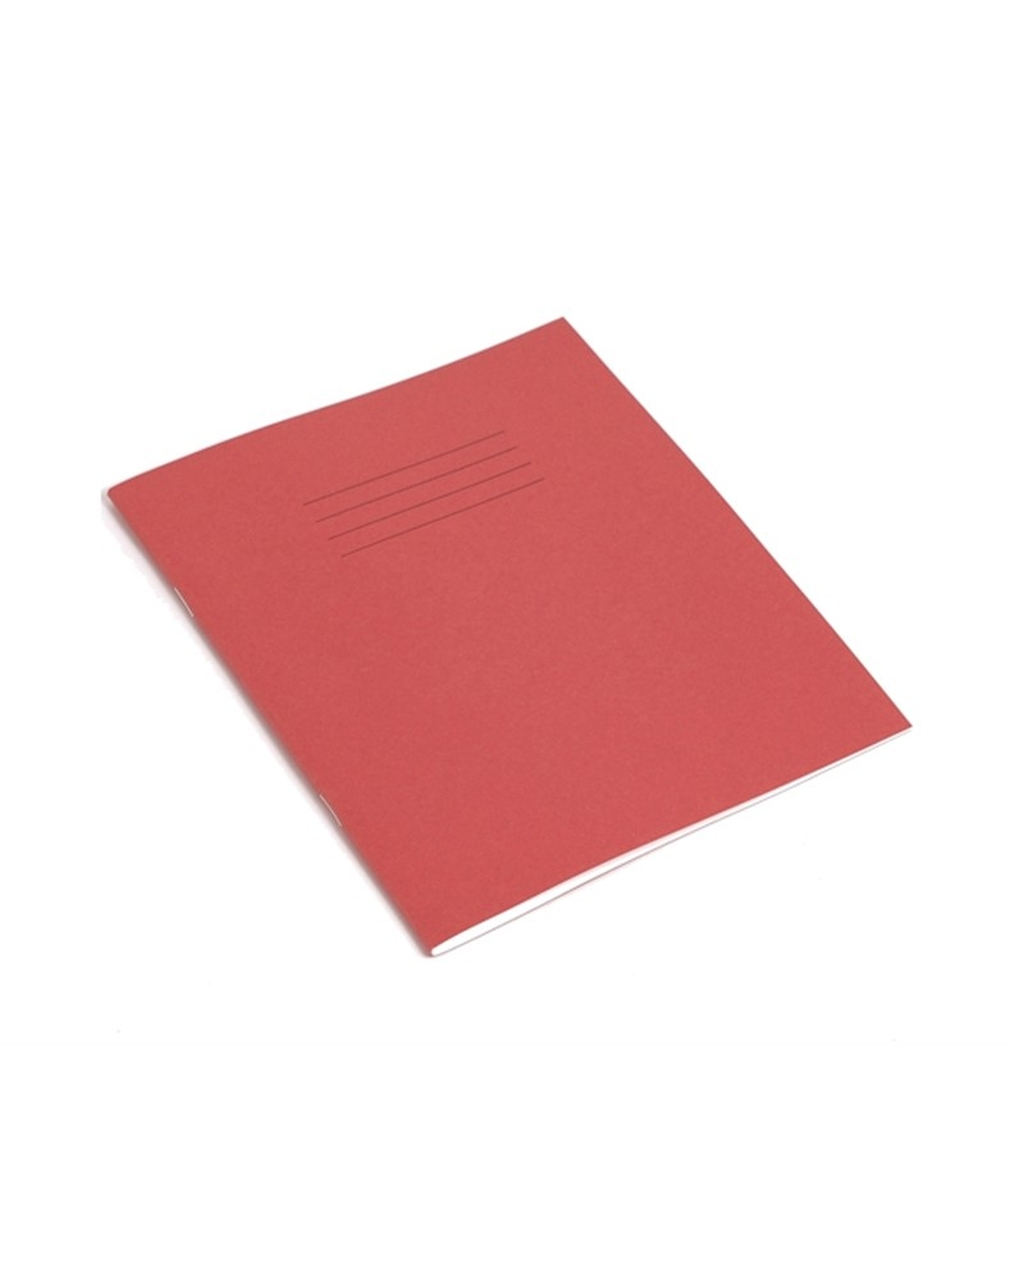 Exercise Book 8 x 6.5 (203 x 165mm) Red Cover 12mm Ruled 48 Pages